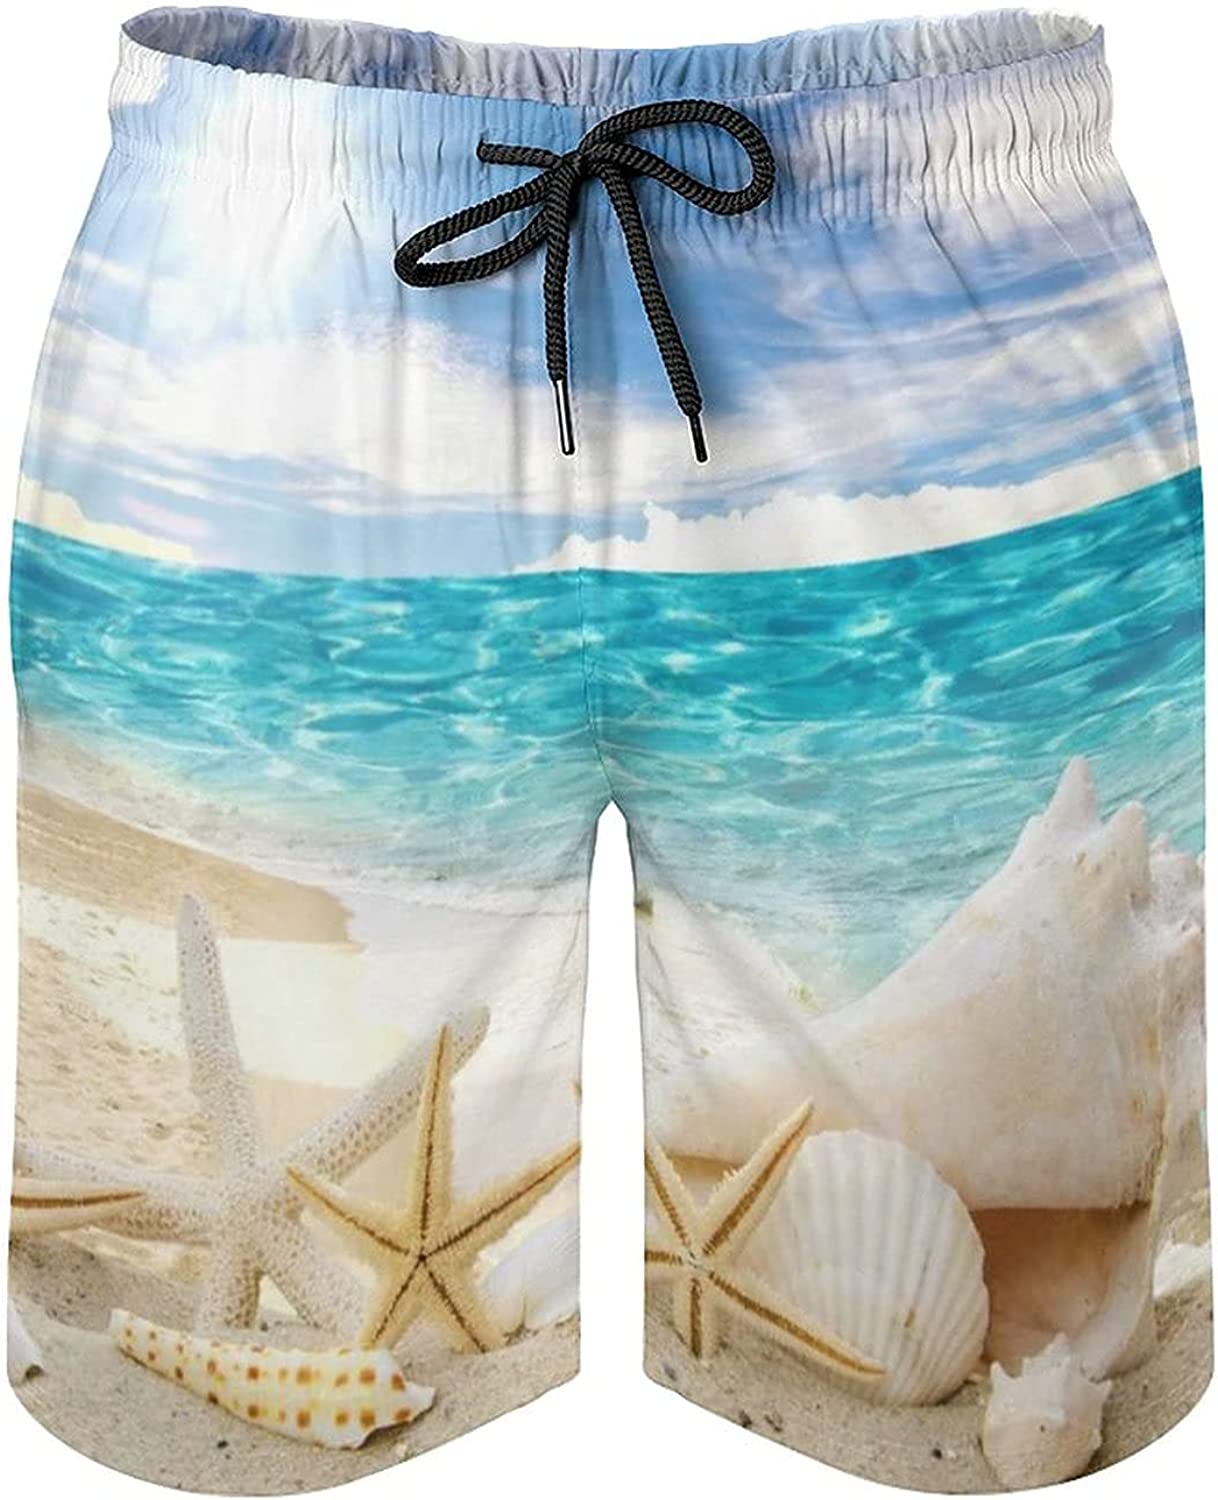 NiYoung Men's Fashion Swim Trunks Quick Dry Beach Board Shorts with Pocket